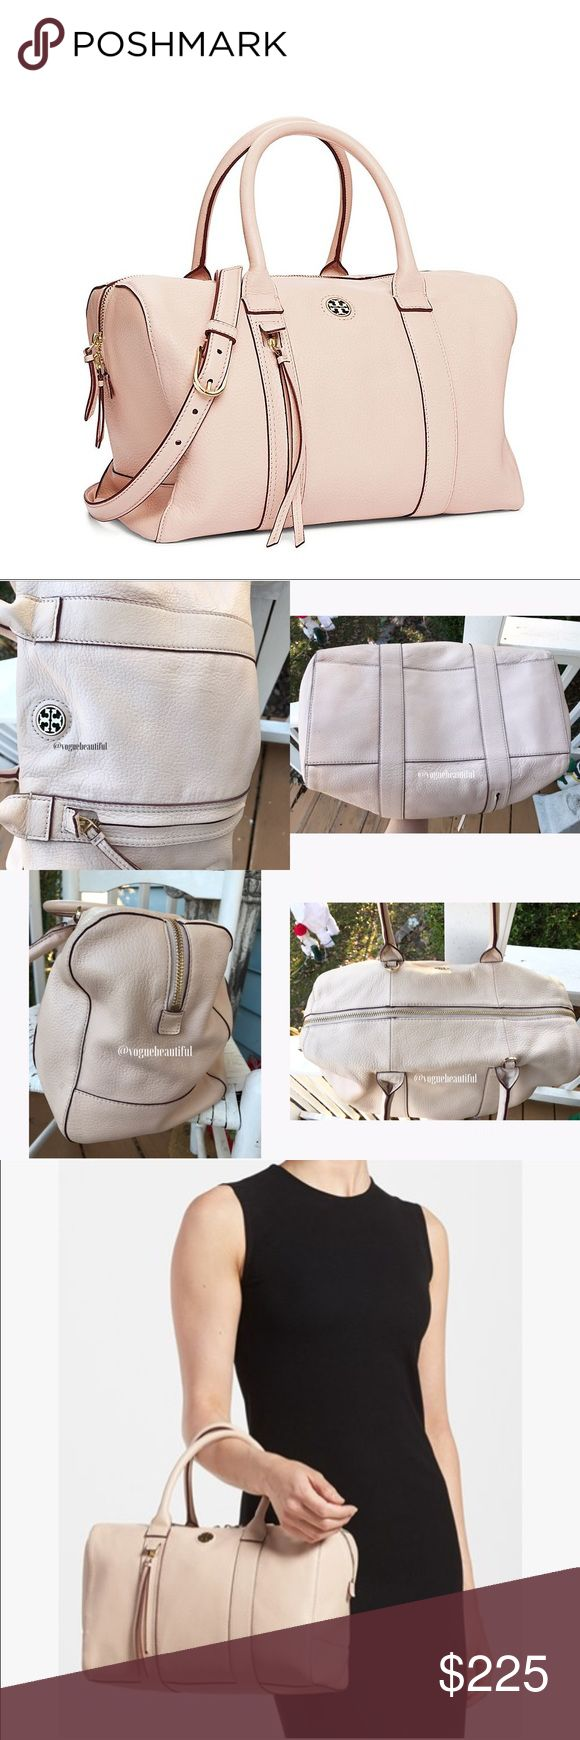 """XTRA PICS Tory Burch Large Brody Satchdl Light Oak Please see main listing for more information • 100% guaranteed authentic • Measures Approximately: 13"""" L x 8.5""""H x 6.5""""W • Preloved condition has some exterior marks and does not include crossbody strap or dustbag • please review all photos & ask any questions before purchasing • I would rate a 7.5/10 condition wise • it is slouchy but with use will look different than the photos • Retailed for $495 • ‼️NO TRADES‼️ Tory Burch Bags Satchels"""